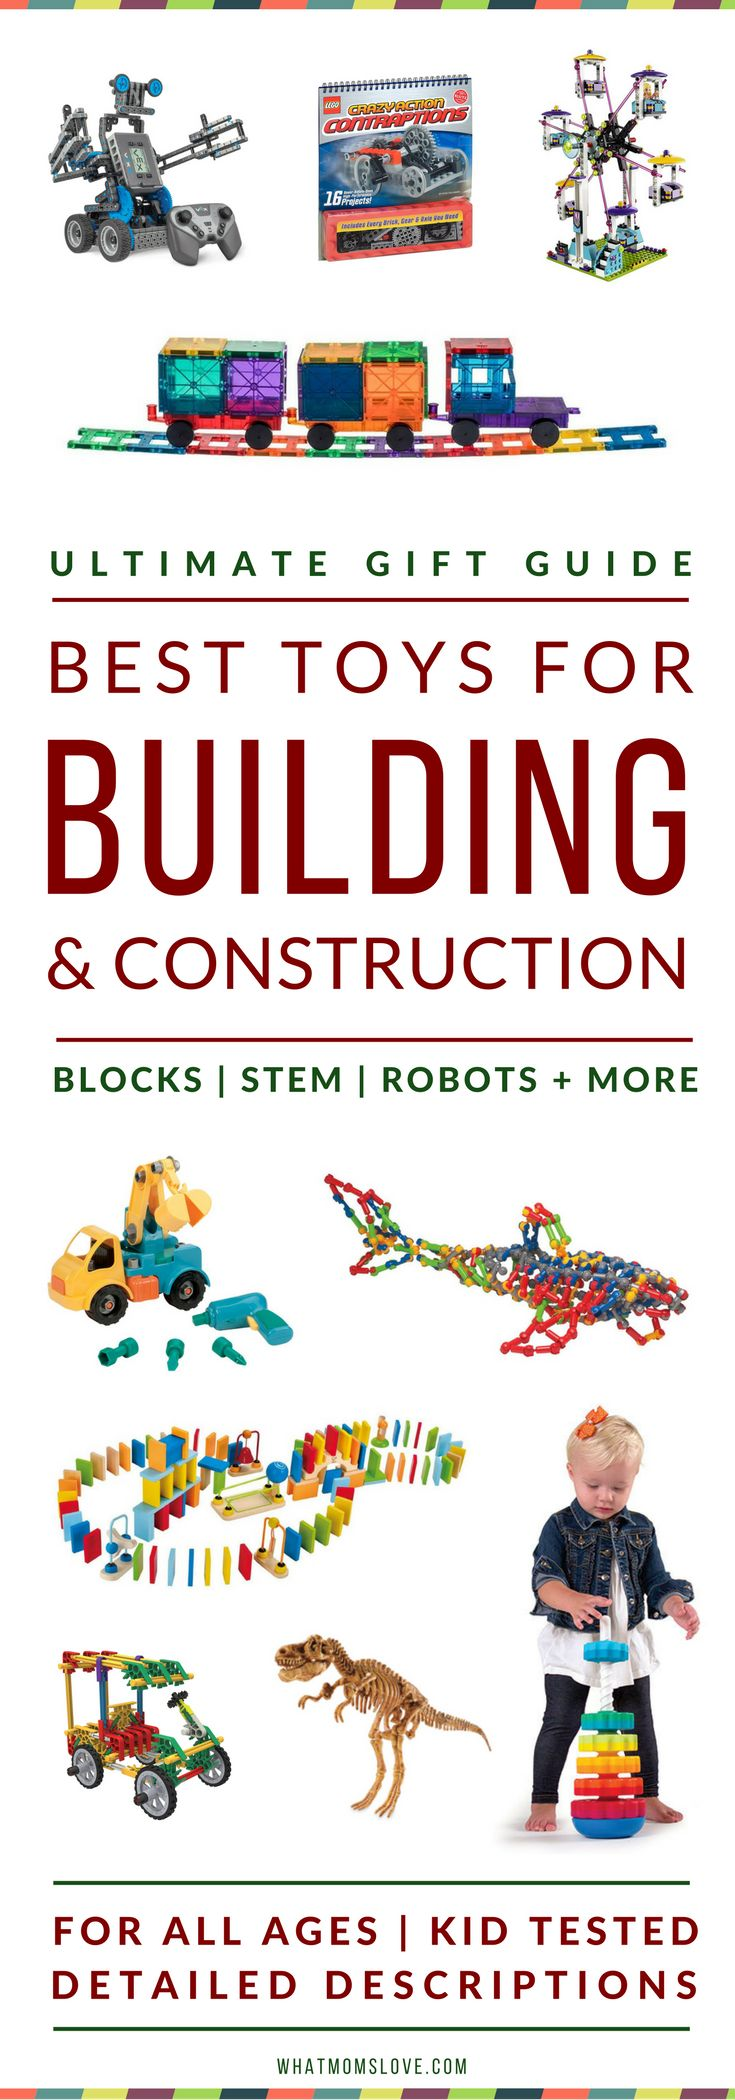 Best Building Toys For Kids | Gift Ideas For Kids Who Love To Build & Construct | Best STEM Toys | Best Wooden Toys | Best Blocks For Toddlers, Pre-Schoolers | Best Robotic Kits for Tweens + Teens | From The What Moms Love Ultimate Toy Gift Guide